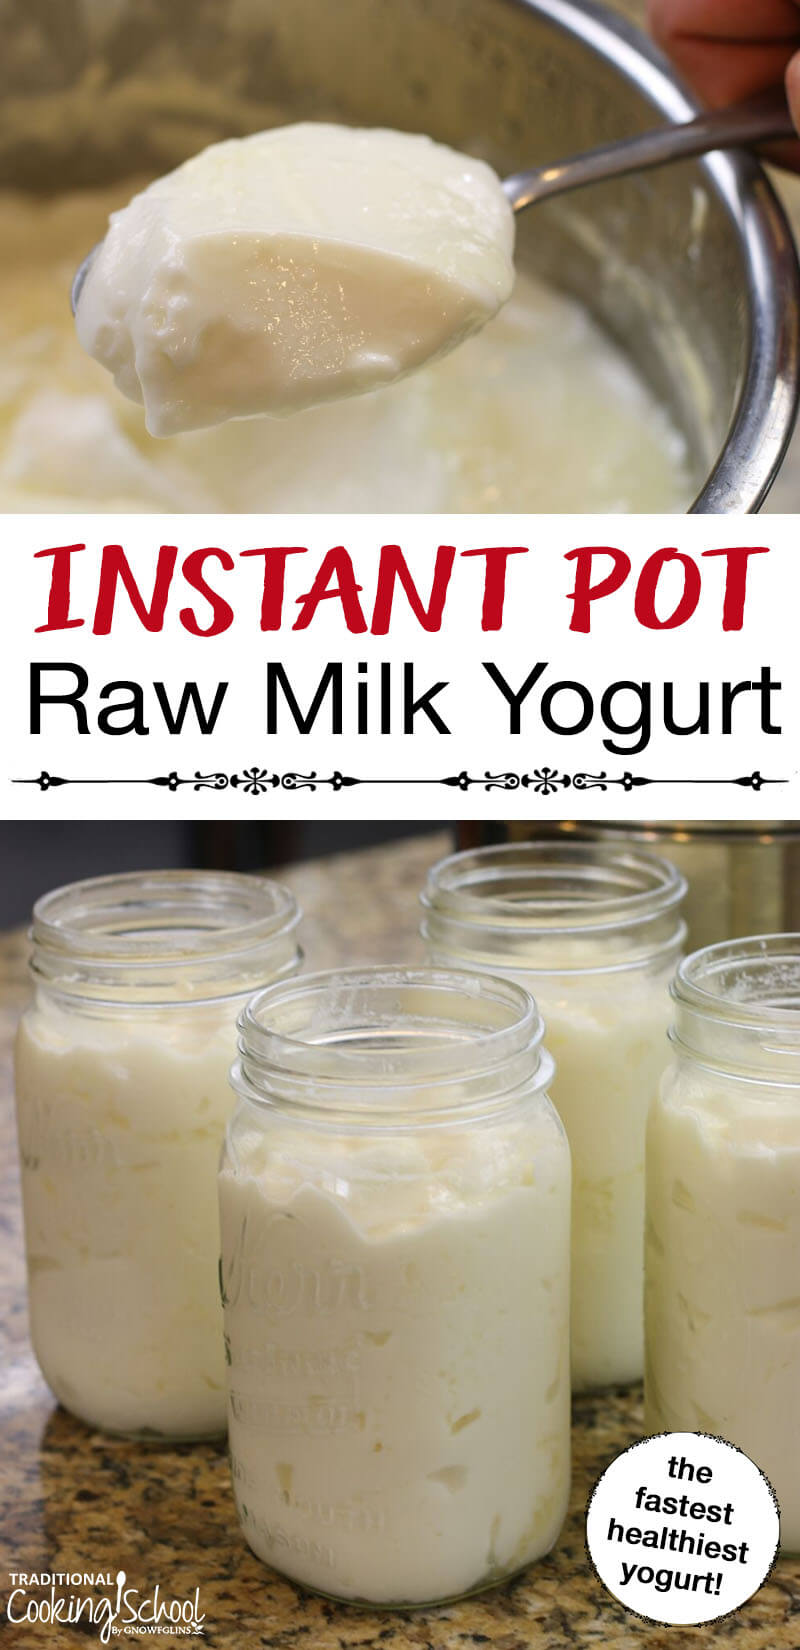 Raw Milk Yogurt {Instant Pot} | Is it possible to make thick raw milk yogurt in the Instant Pot? In other words... can you skip the pasteurizing step, retaining all the raw goodness of your milk, and still end up with thick yogurt? Find out here! | TraditionalCookingSchool.com